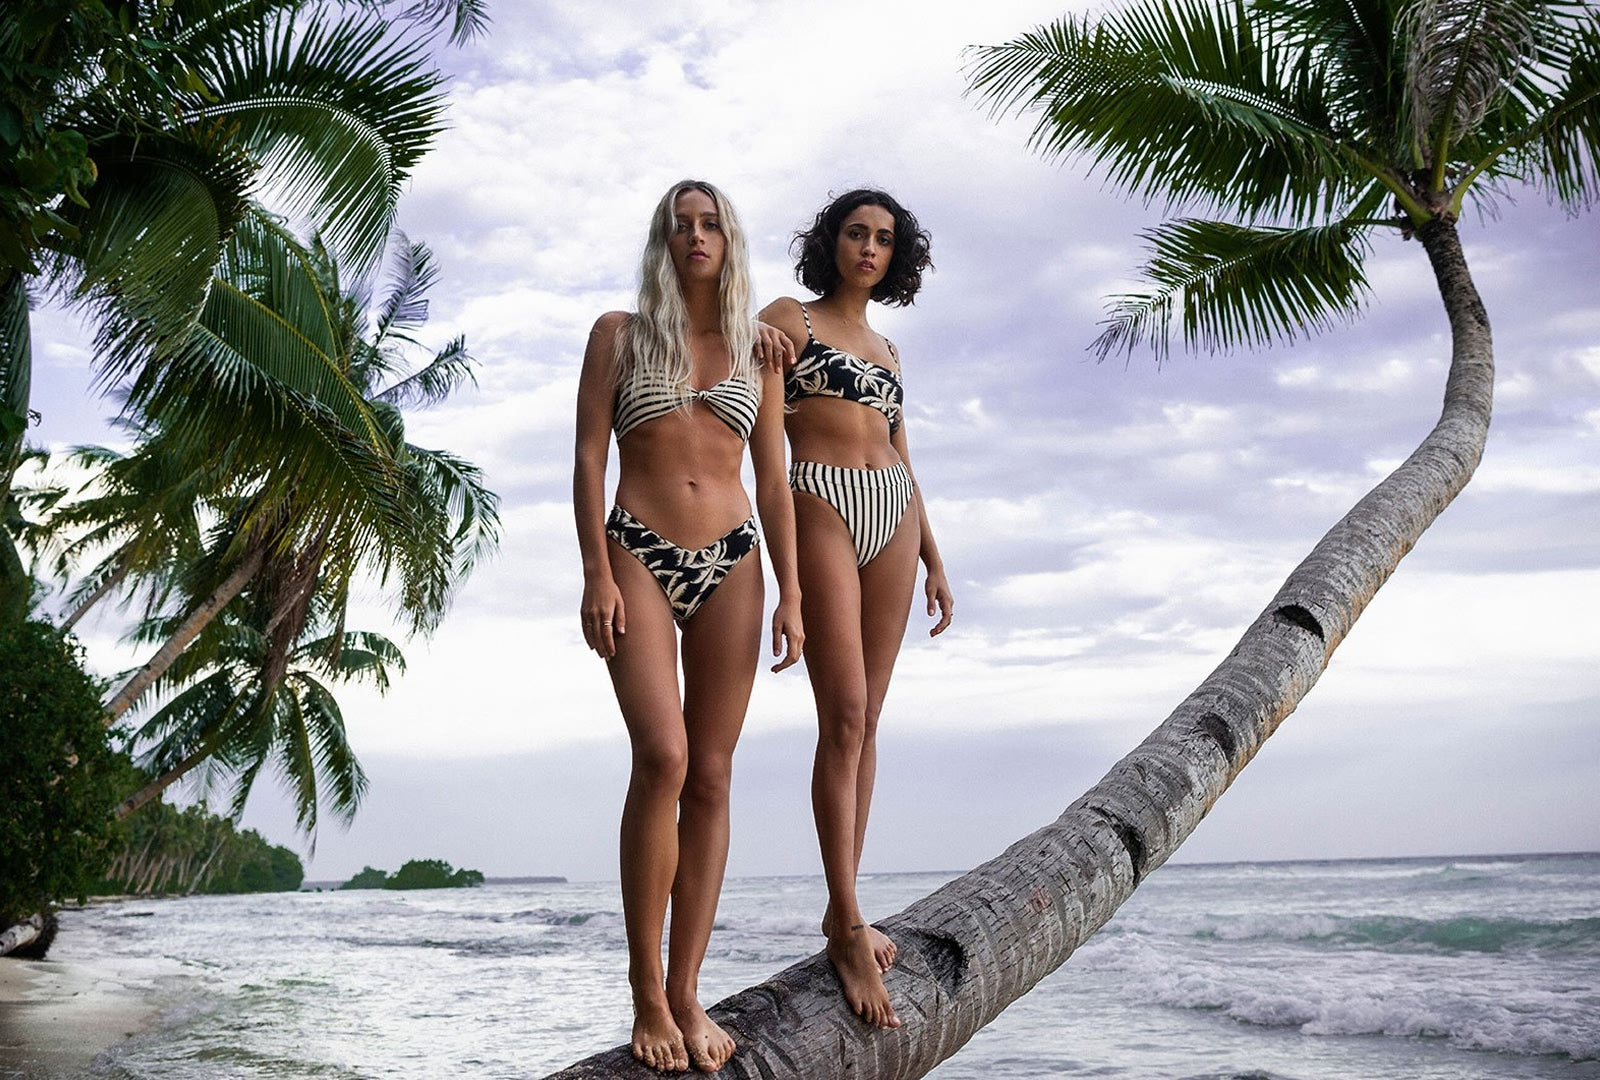 Billabong Under The Palms Lookbook